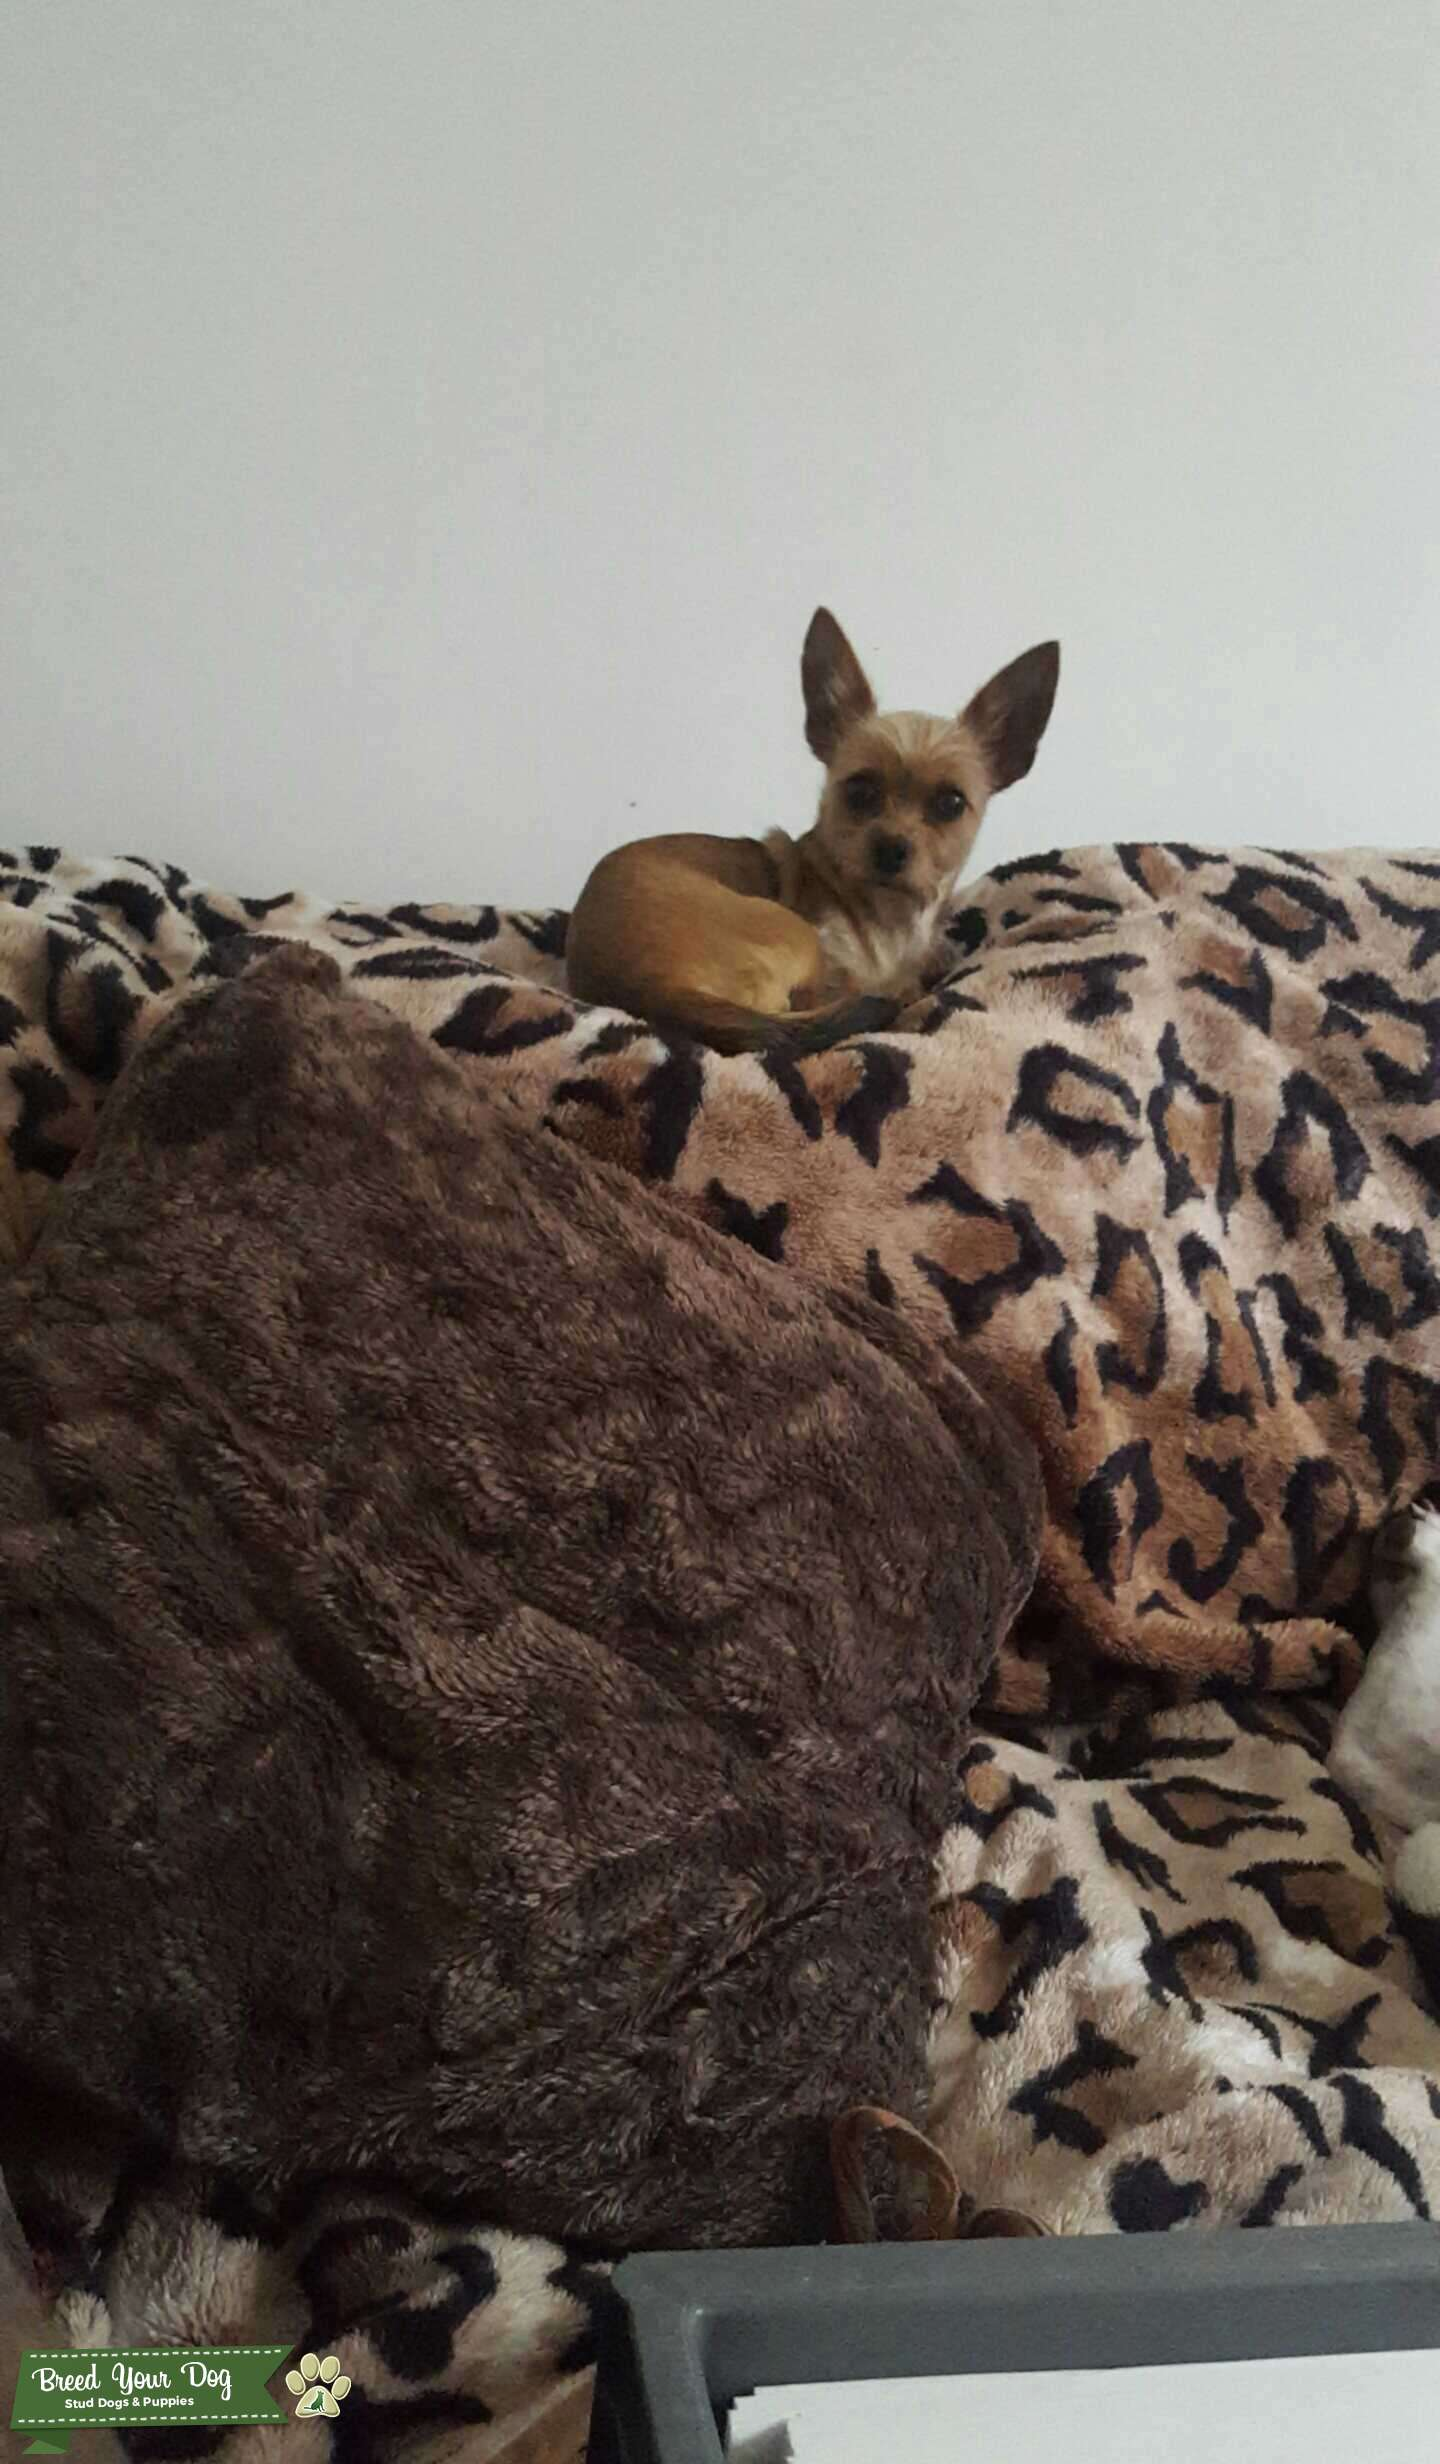 Stud Dog Chihuahua Cross Yorkie Chorkie Breed Your Dog